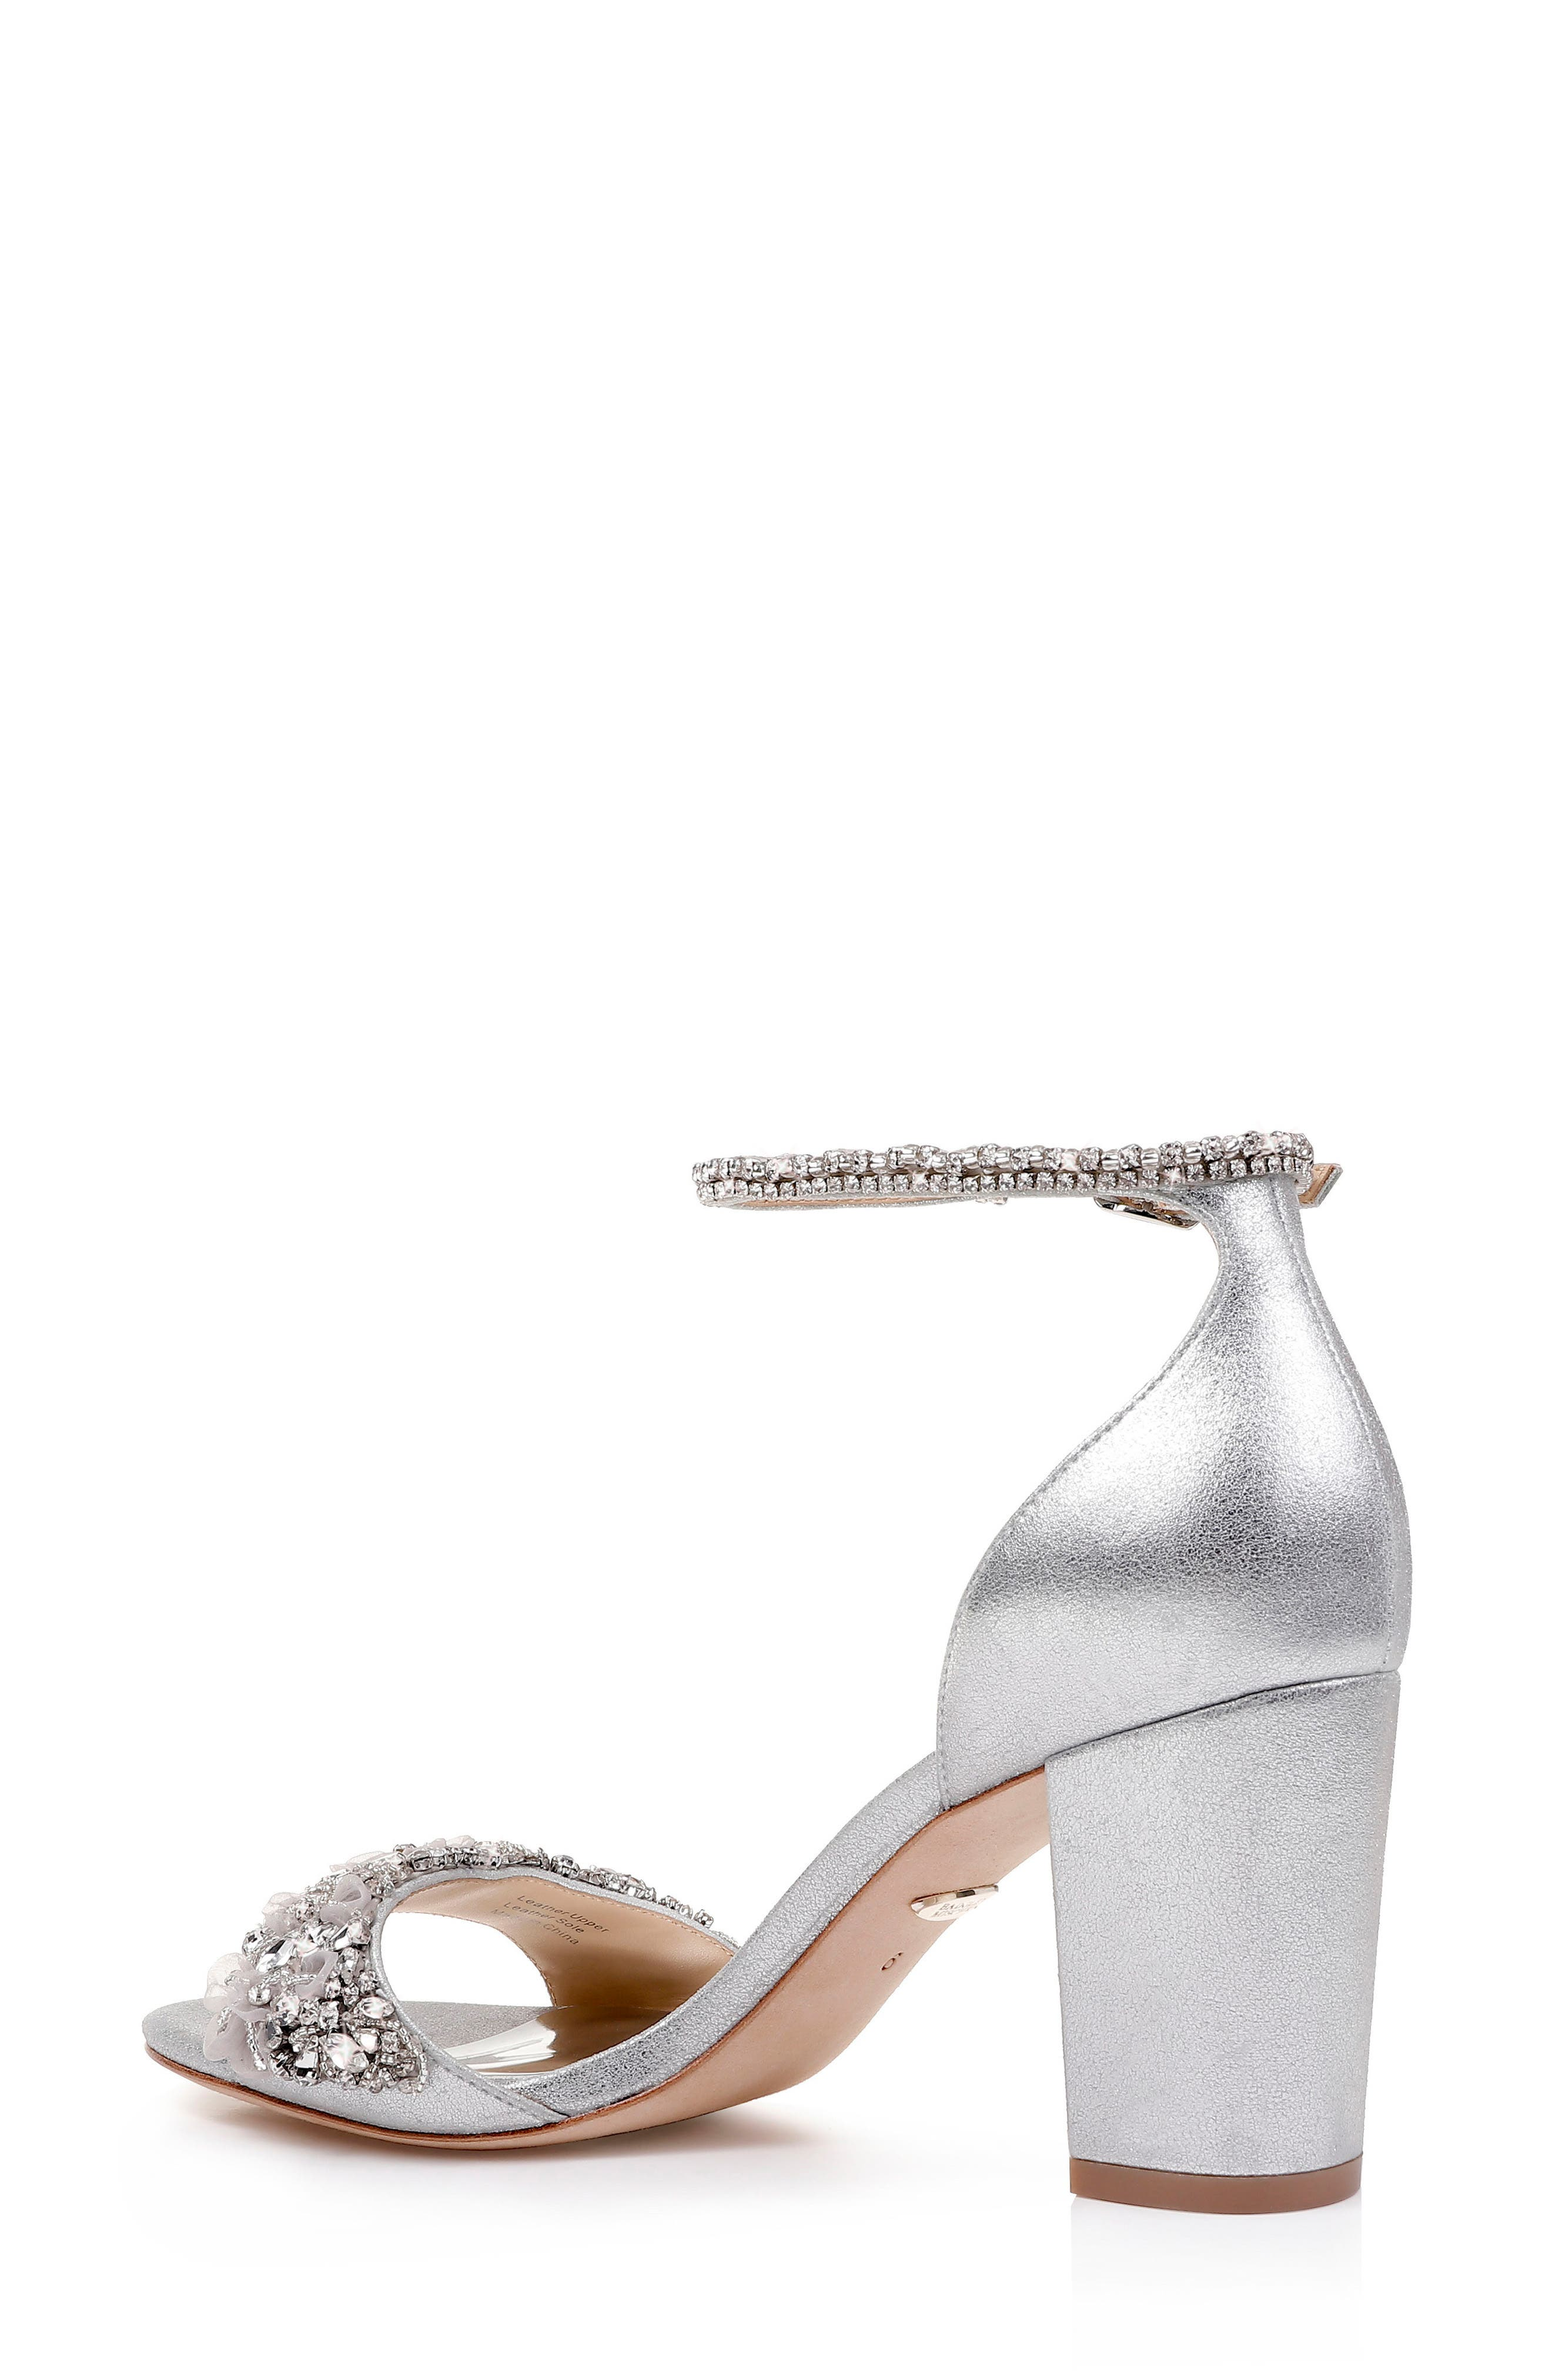 BADGLEY MISCHKA COLLECTION, Badgley Mischka Finesse Embellished Ankle Strap Sandal, Alternate thumbnail 2, color, SILVER METALLIC SATIN